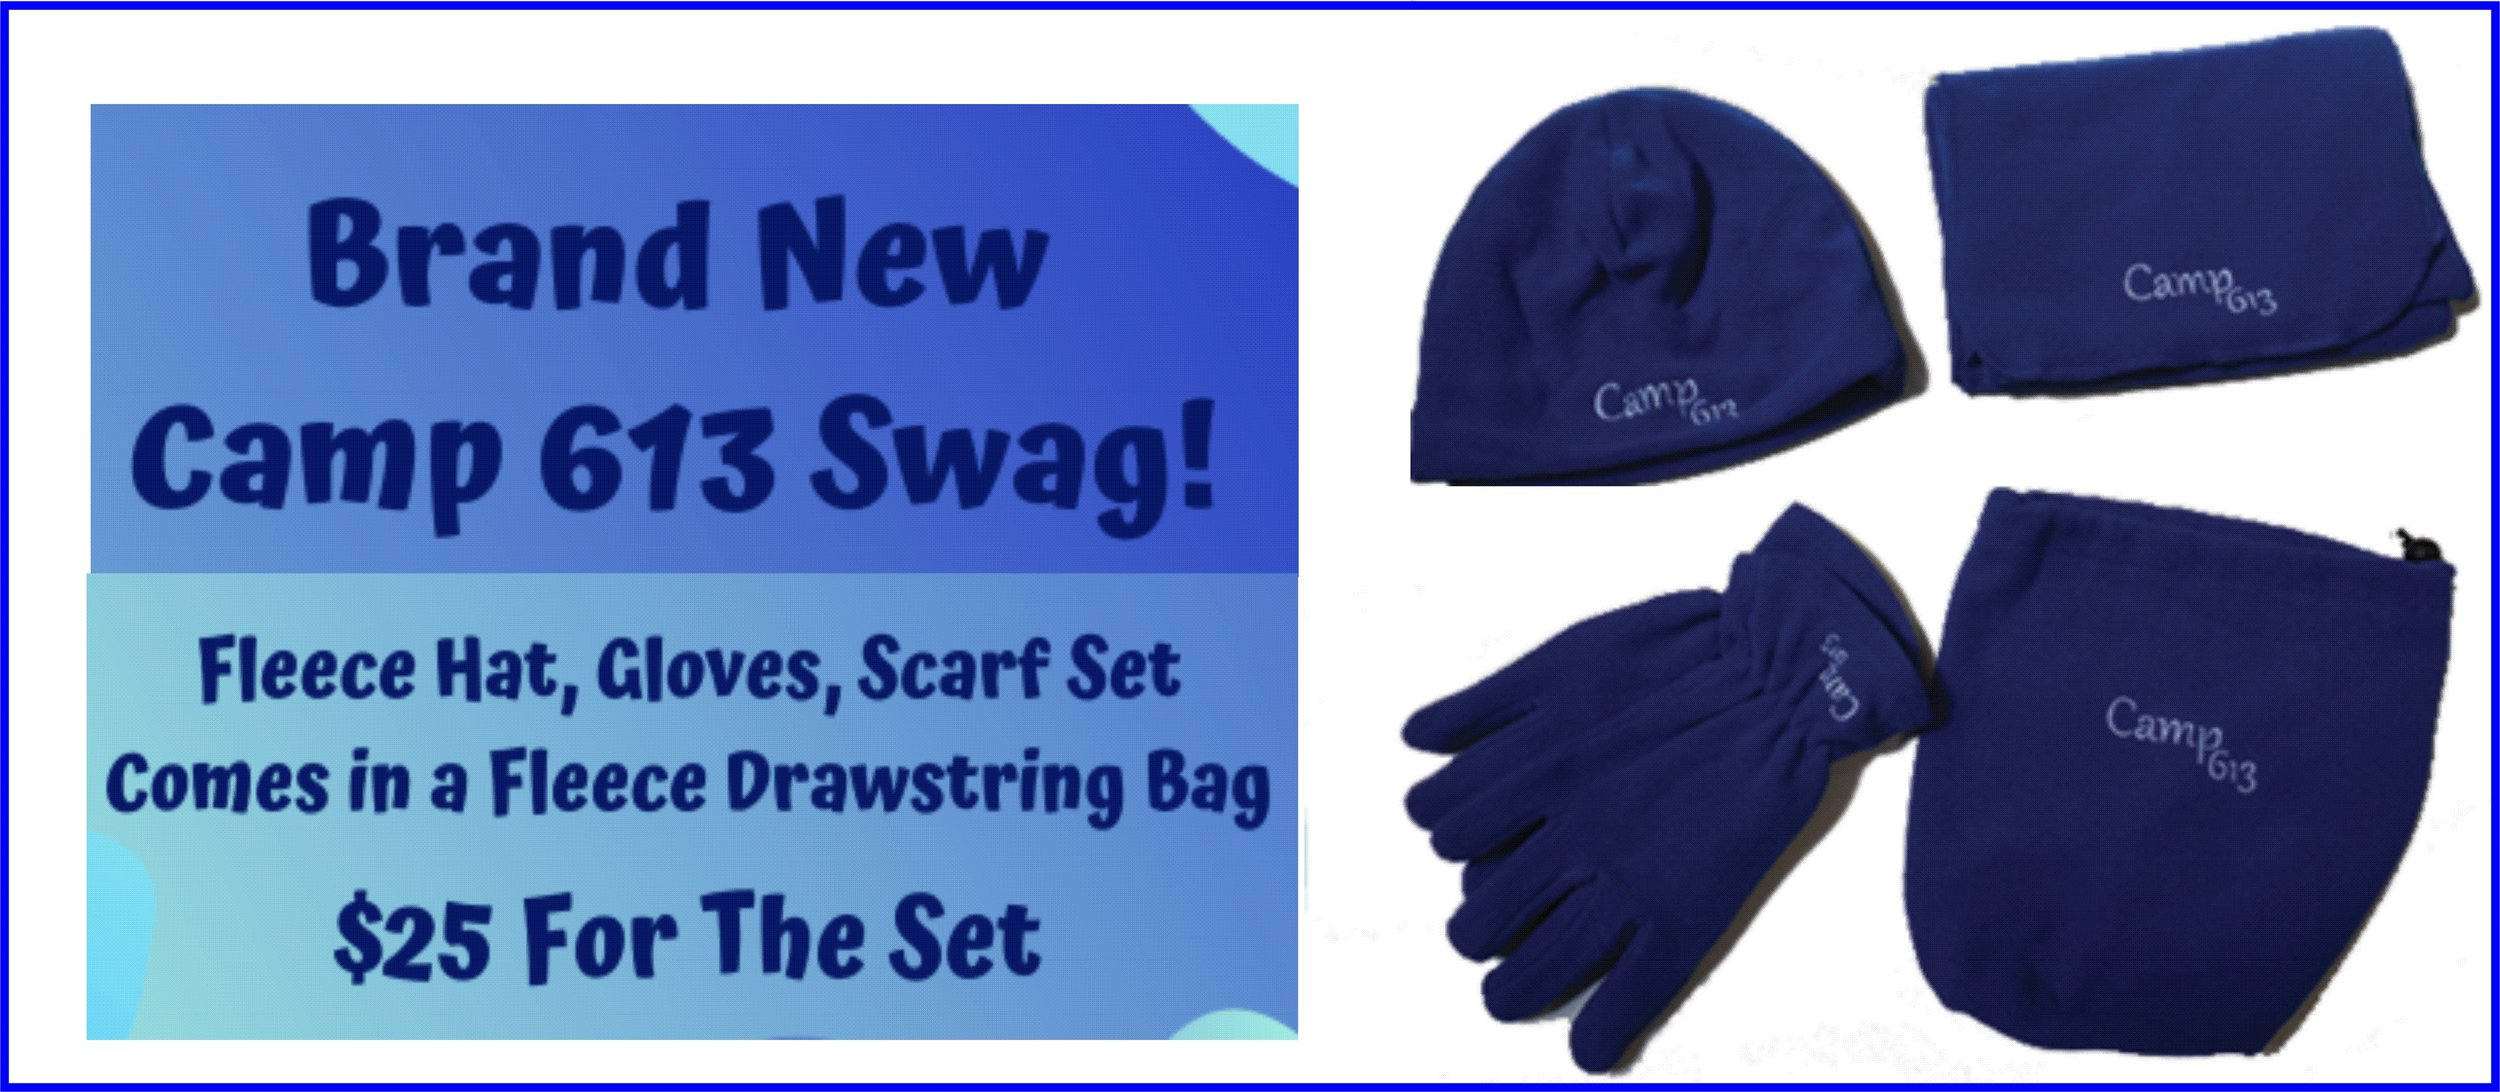 CaMP Merchandise - Click Here to order Merchandise